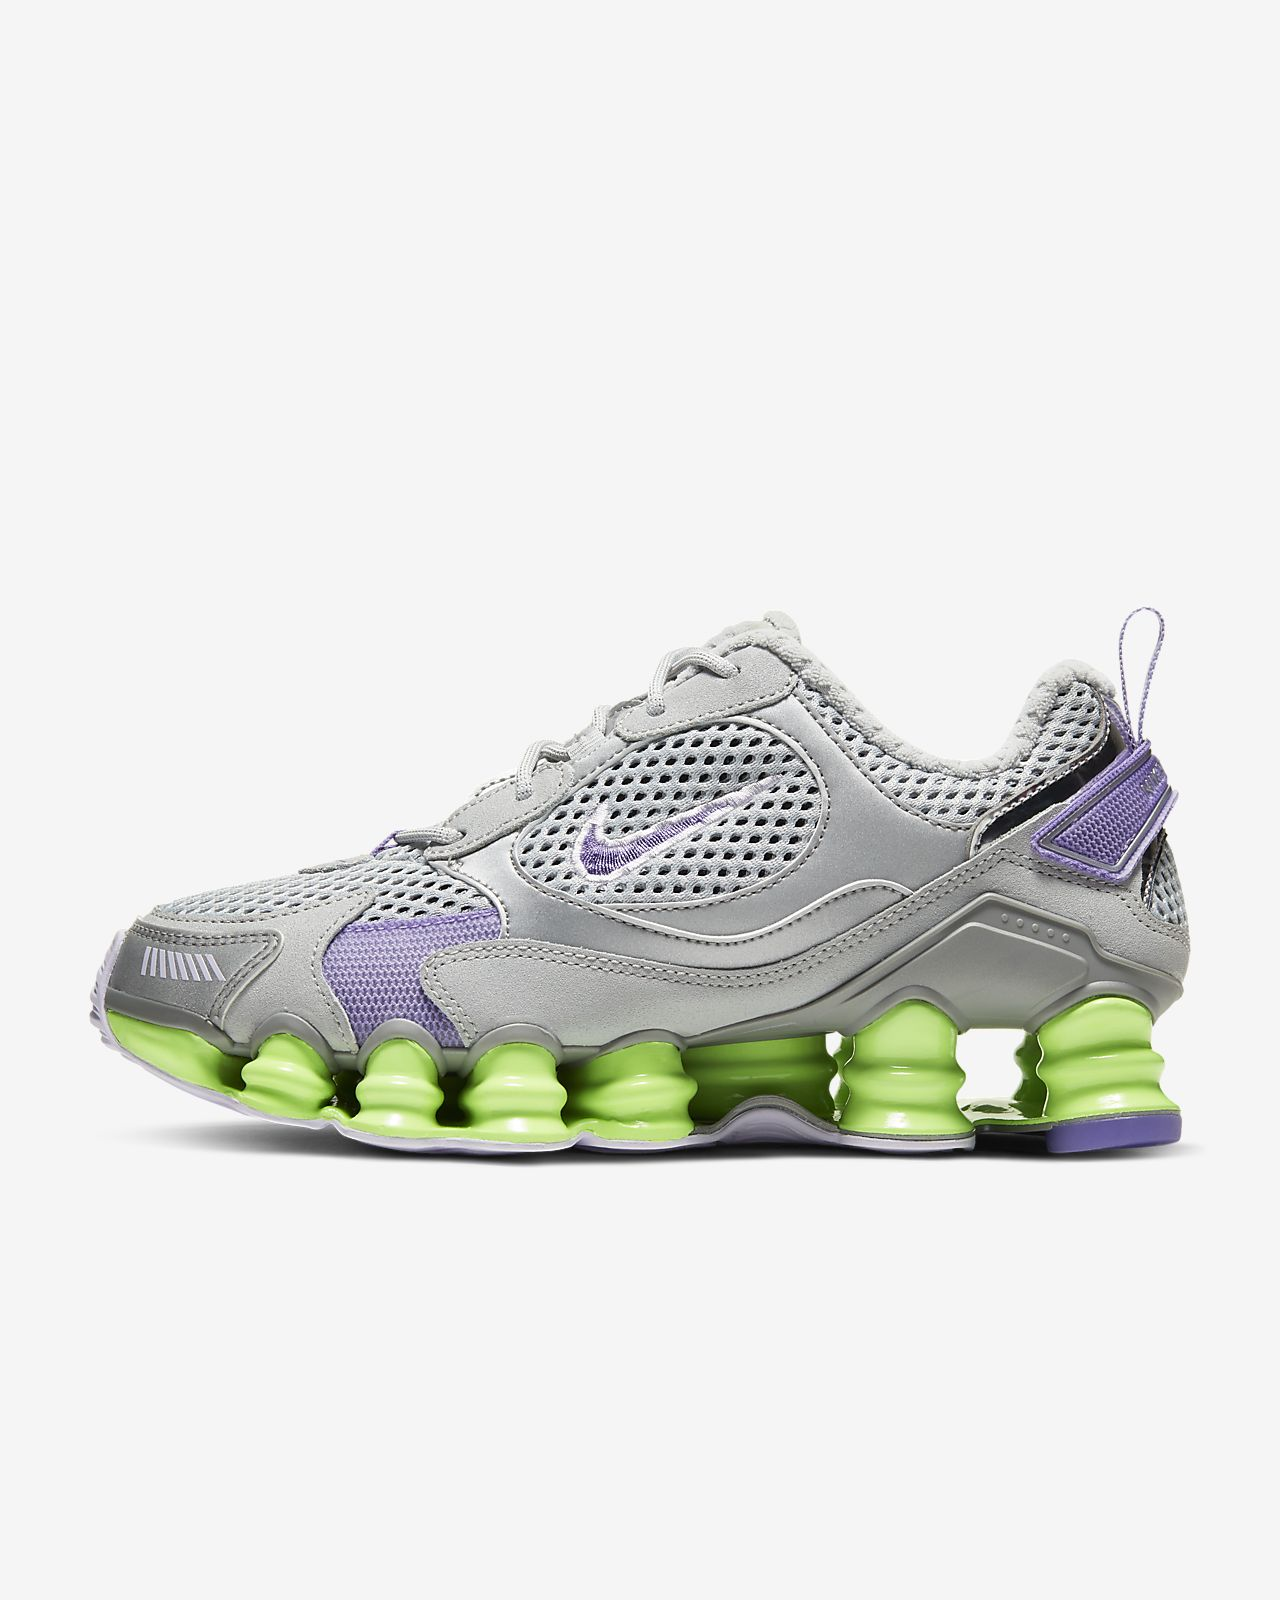 Nike Shox TL Nova SP Women's Shoe